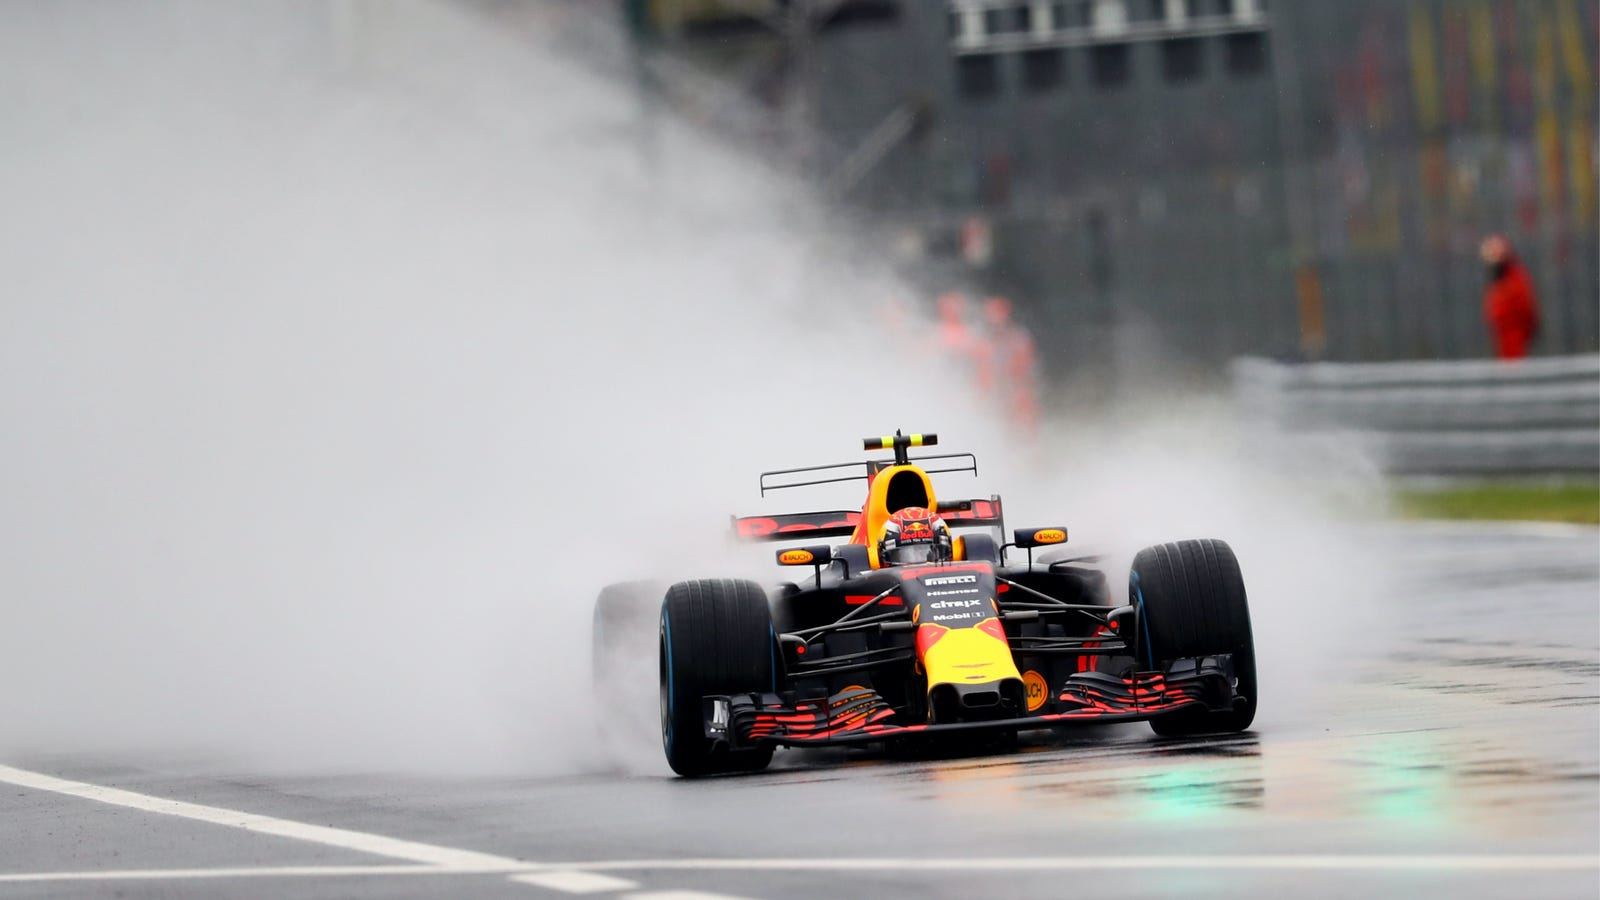 Nine Cars Of F1\'s 20-Car Field Racked Up 150 Places\' Worth Of Grid ...